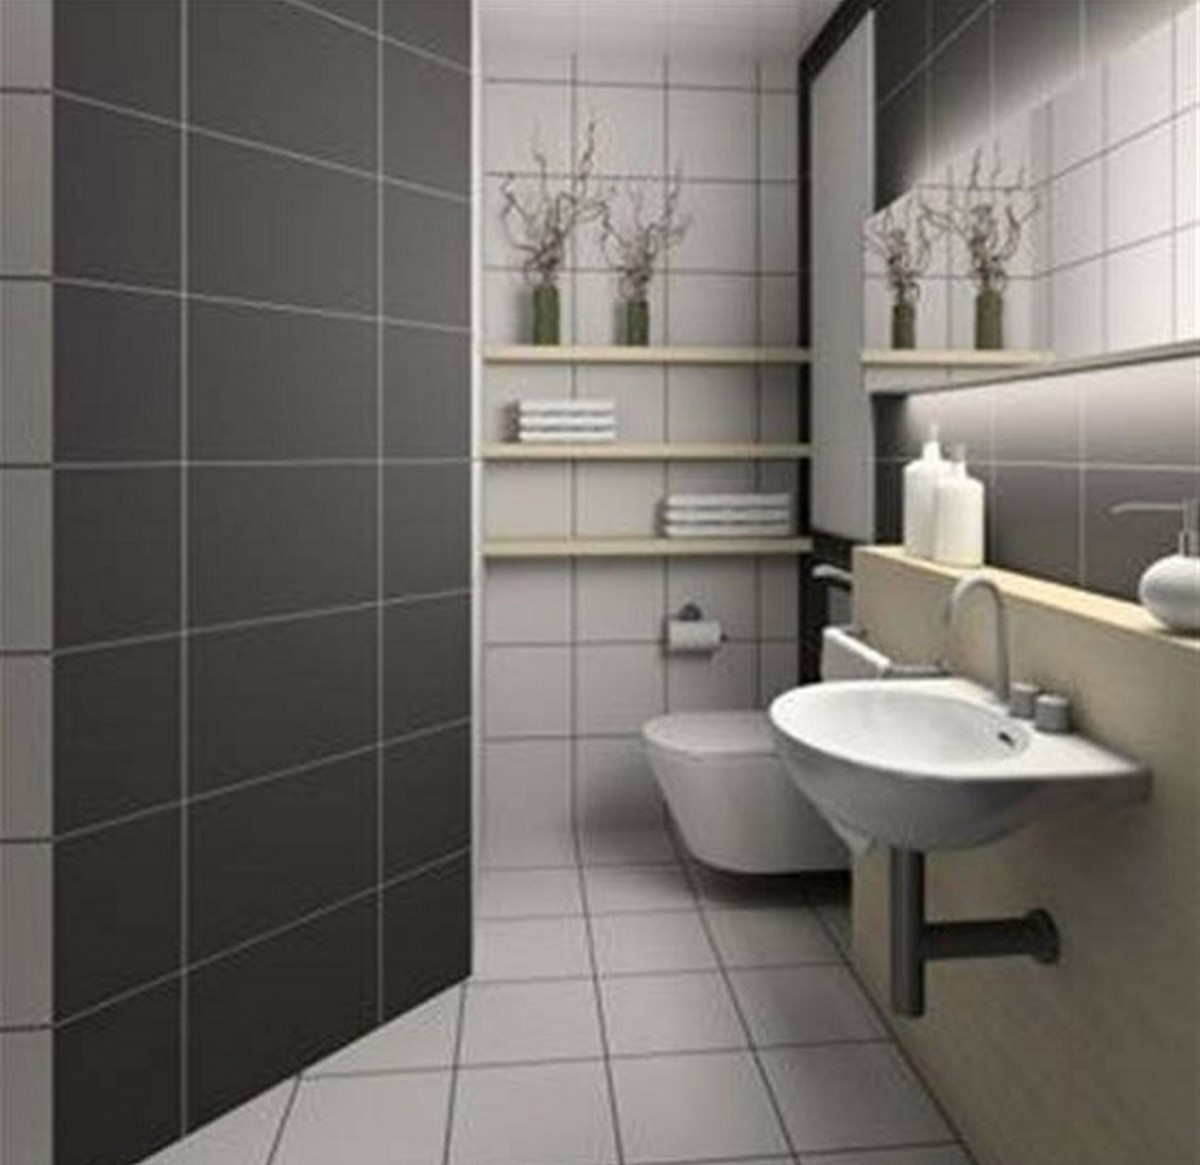 1-Color-ideas-for-bathrooms-grey-color-bathroom-tile-pedestal-sink-shelves-wide-mirror-toilet-flower-vase-bathroom-sink-ceiling-light-porcelain-bathroom-accessories-wall